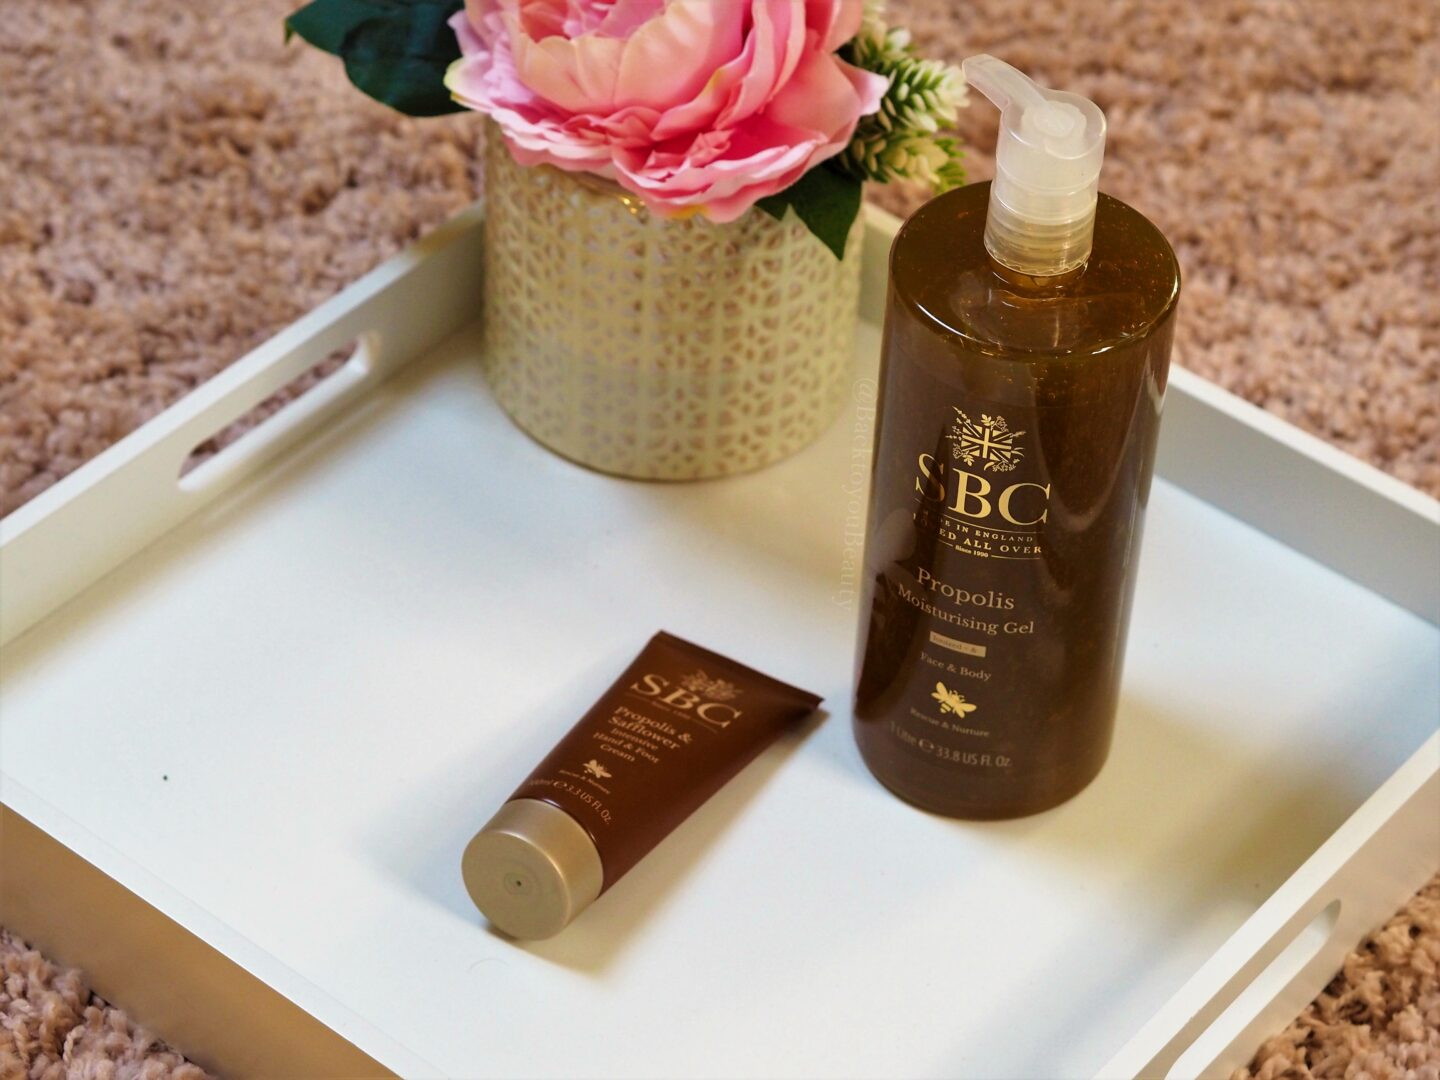 sbc propolis gel and handcream